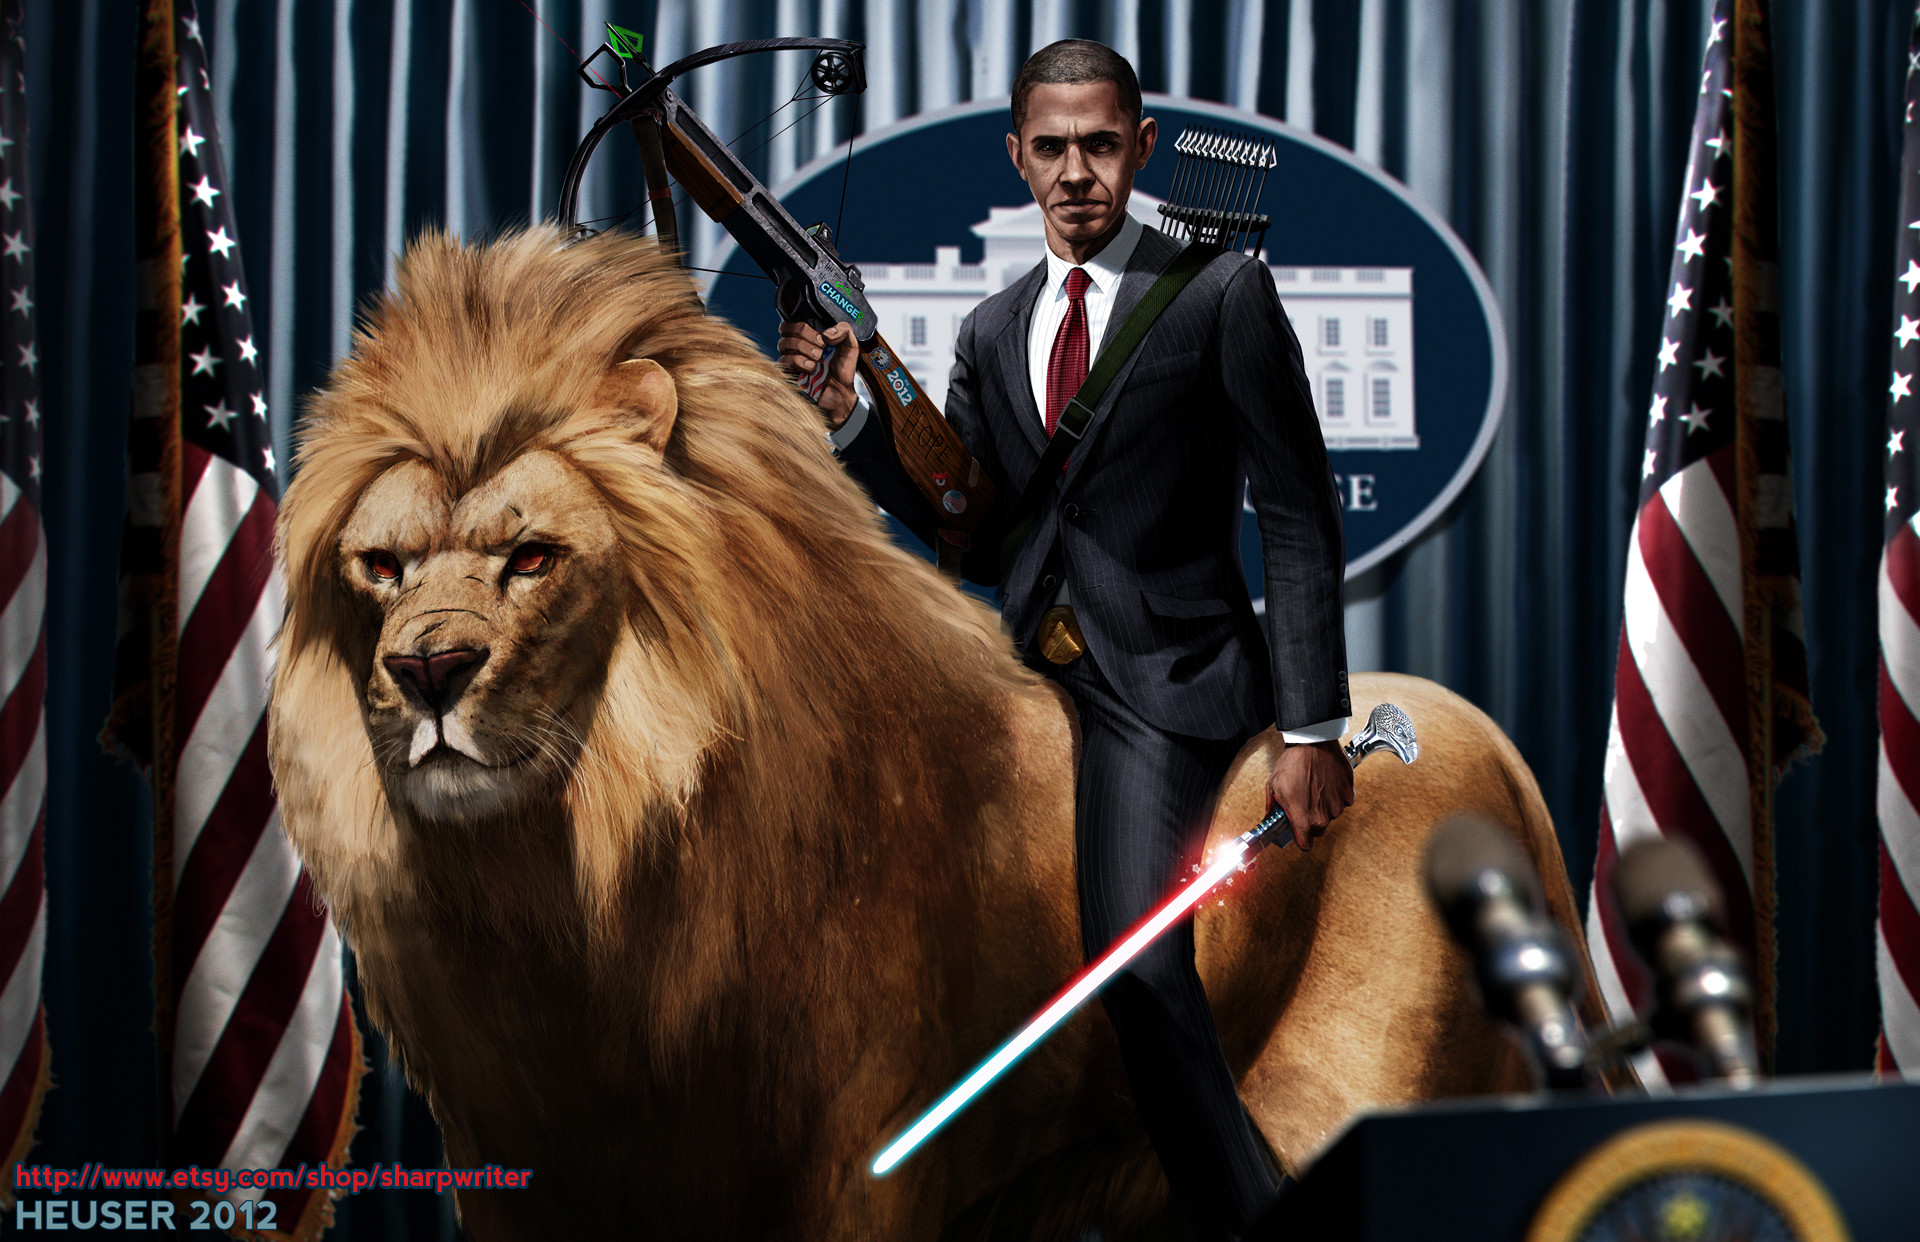 1920x1242 Obama funny political politics cat lion creative wallpaper |  |  136580 | WallpaperUP